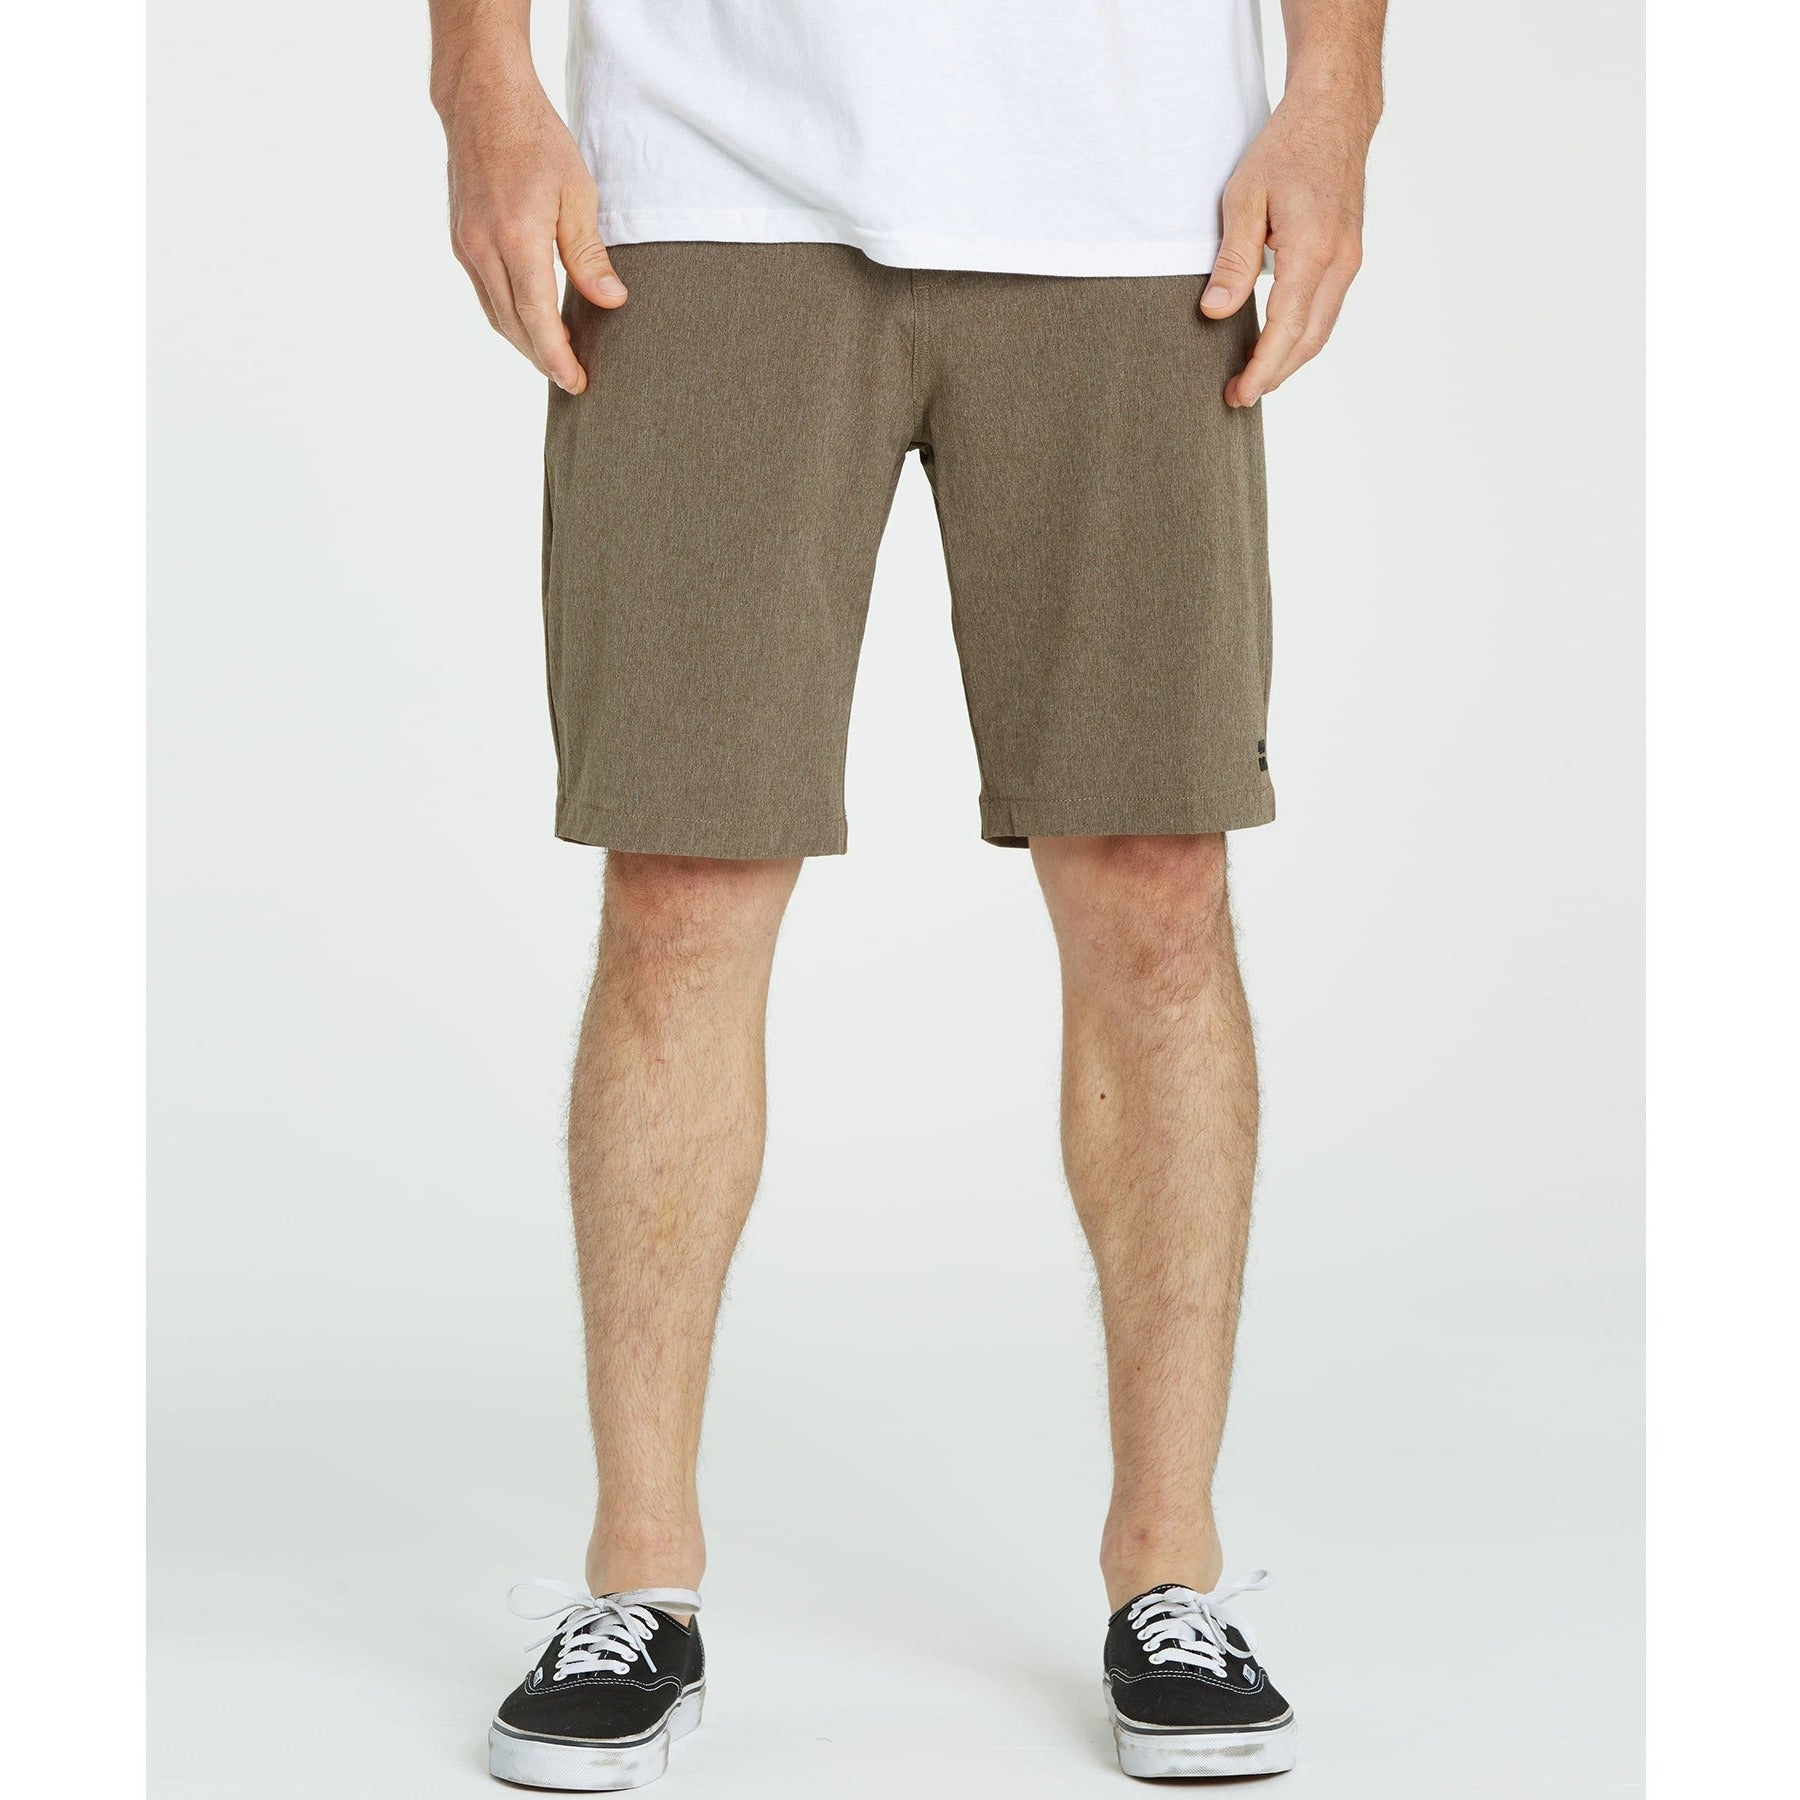 Billabong Crossfire X Hybrid Shorts - 88 Gear